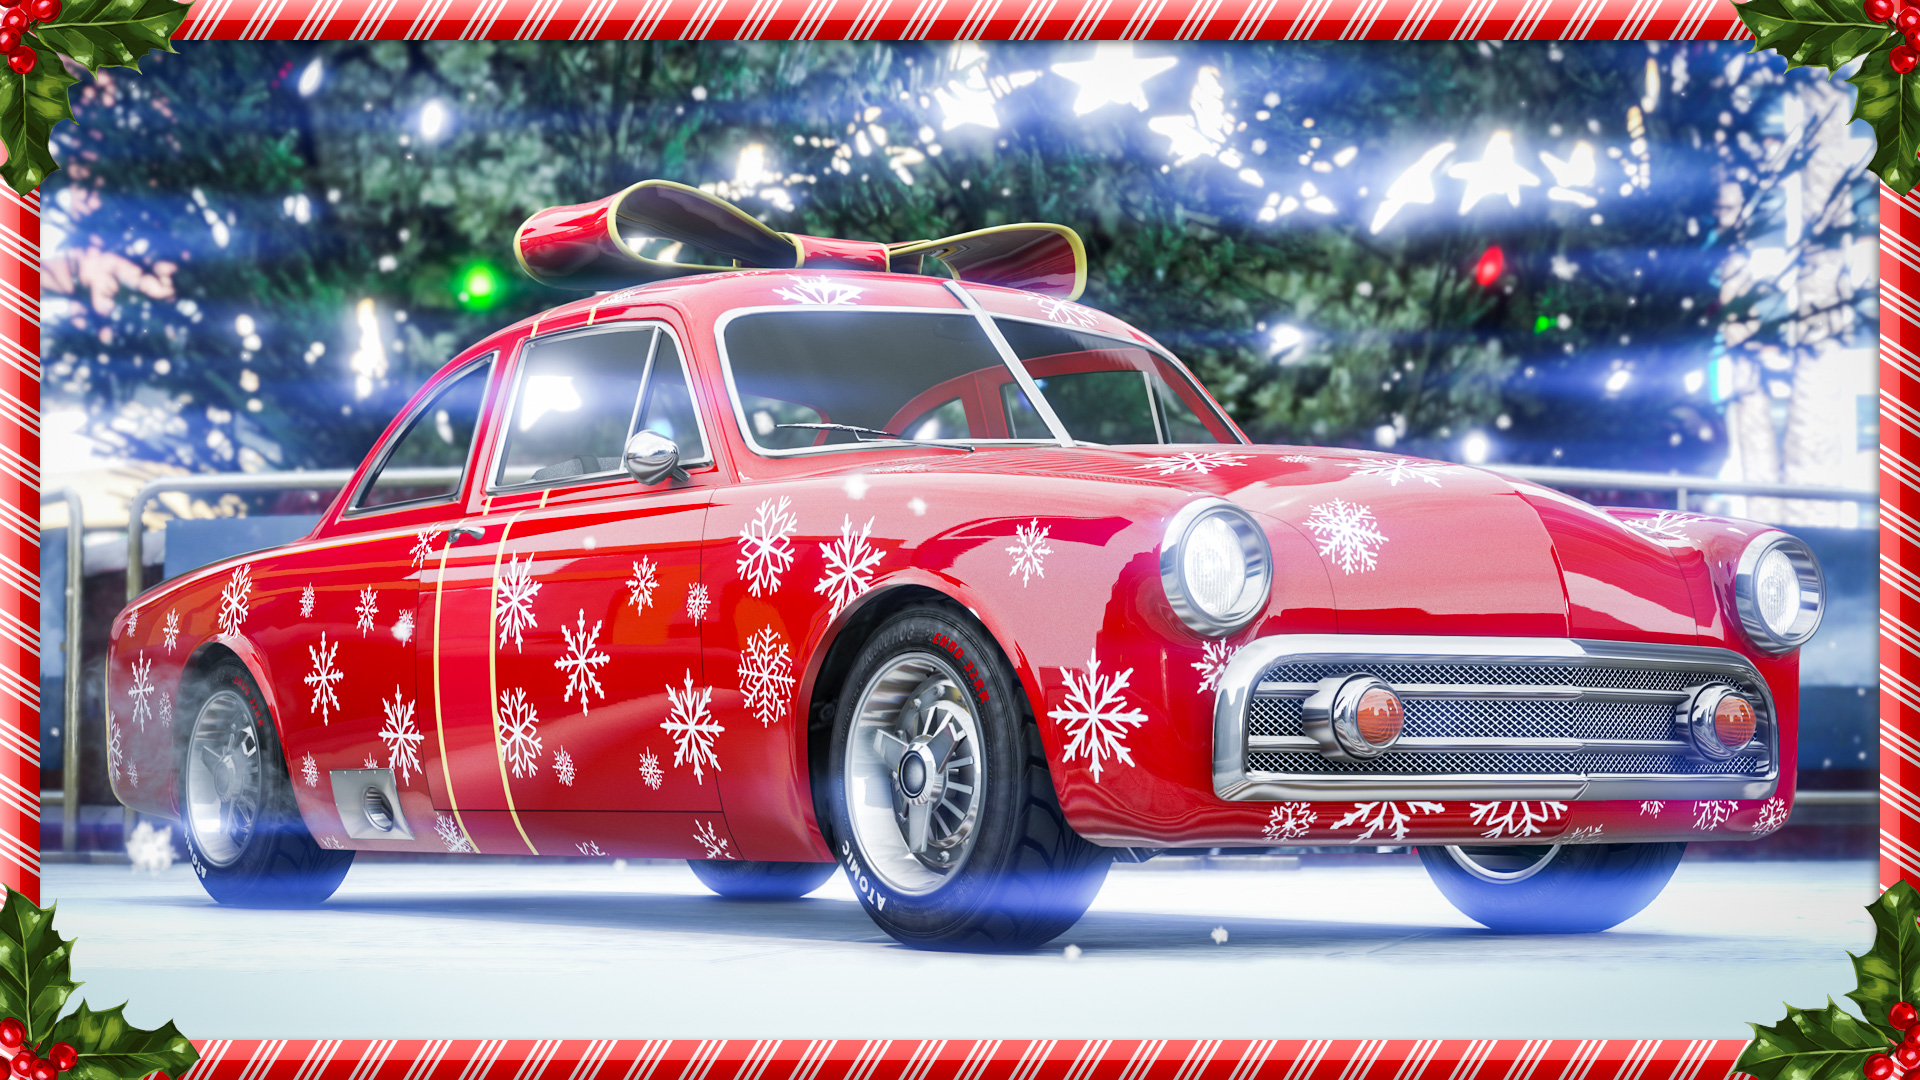 Gta 5 Christmas Gift 2019 GTA Online 2018 Festive Calendar Released   New Modes, Vehicles